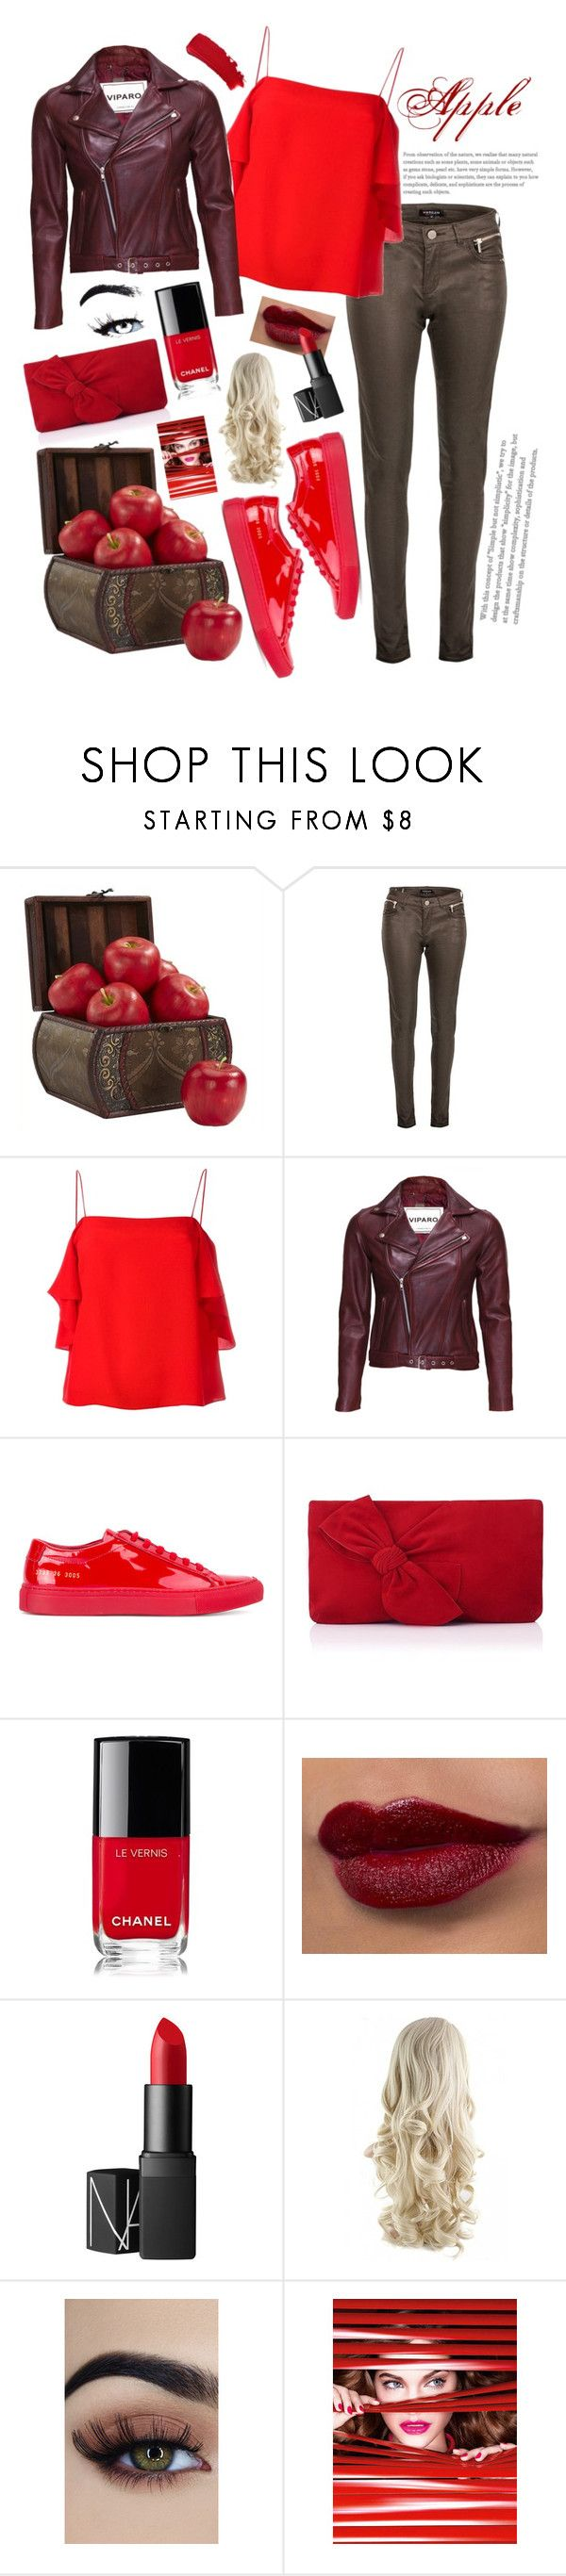 """Apple of my Eye"" by abbycookie ❤ liked on Polyvore featuring Nearly Natural, Morgan, Fendi, VIPARO, Common Projects, L.K.Bennett, Chanel, NARS Cosmetics and L'Oréal Paris"